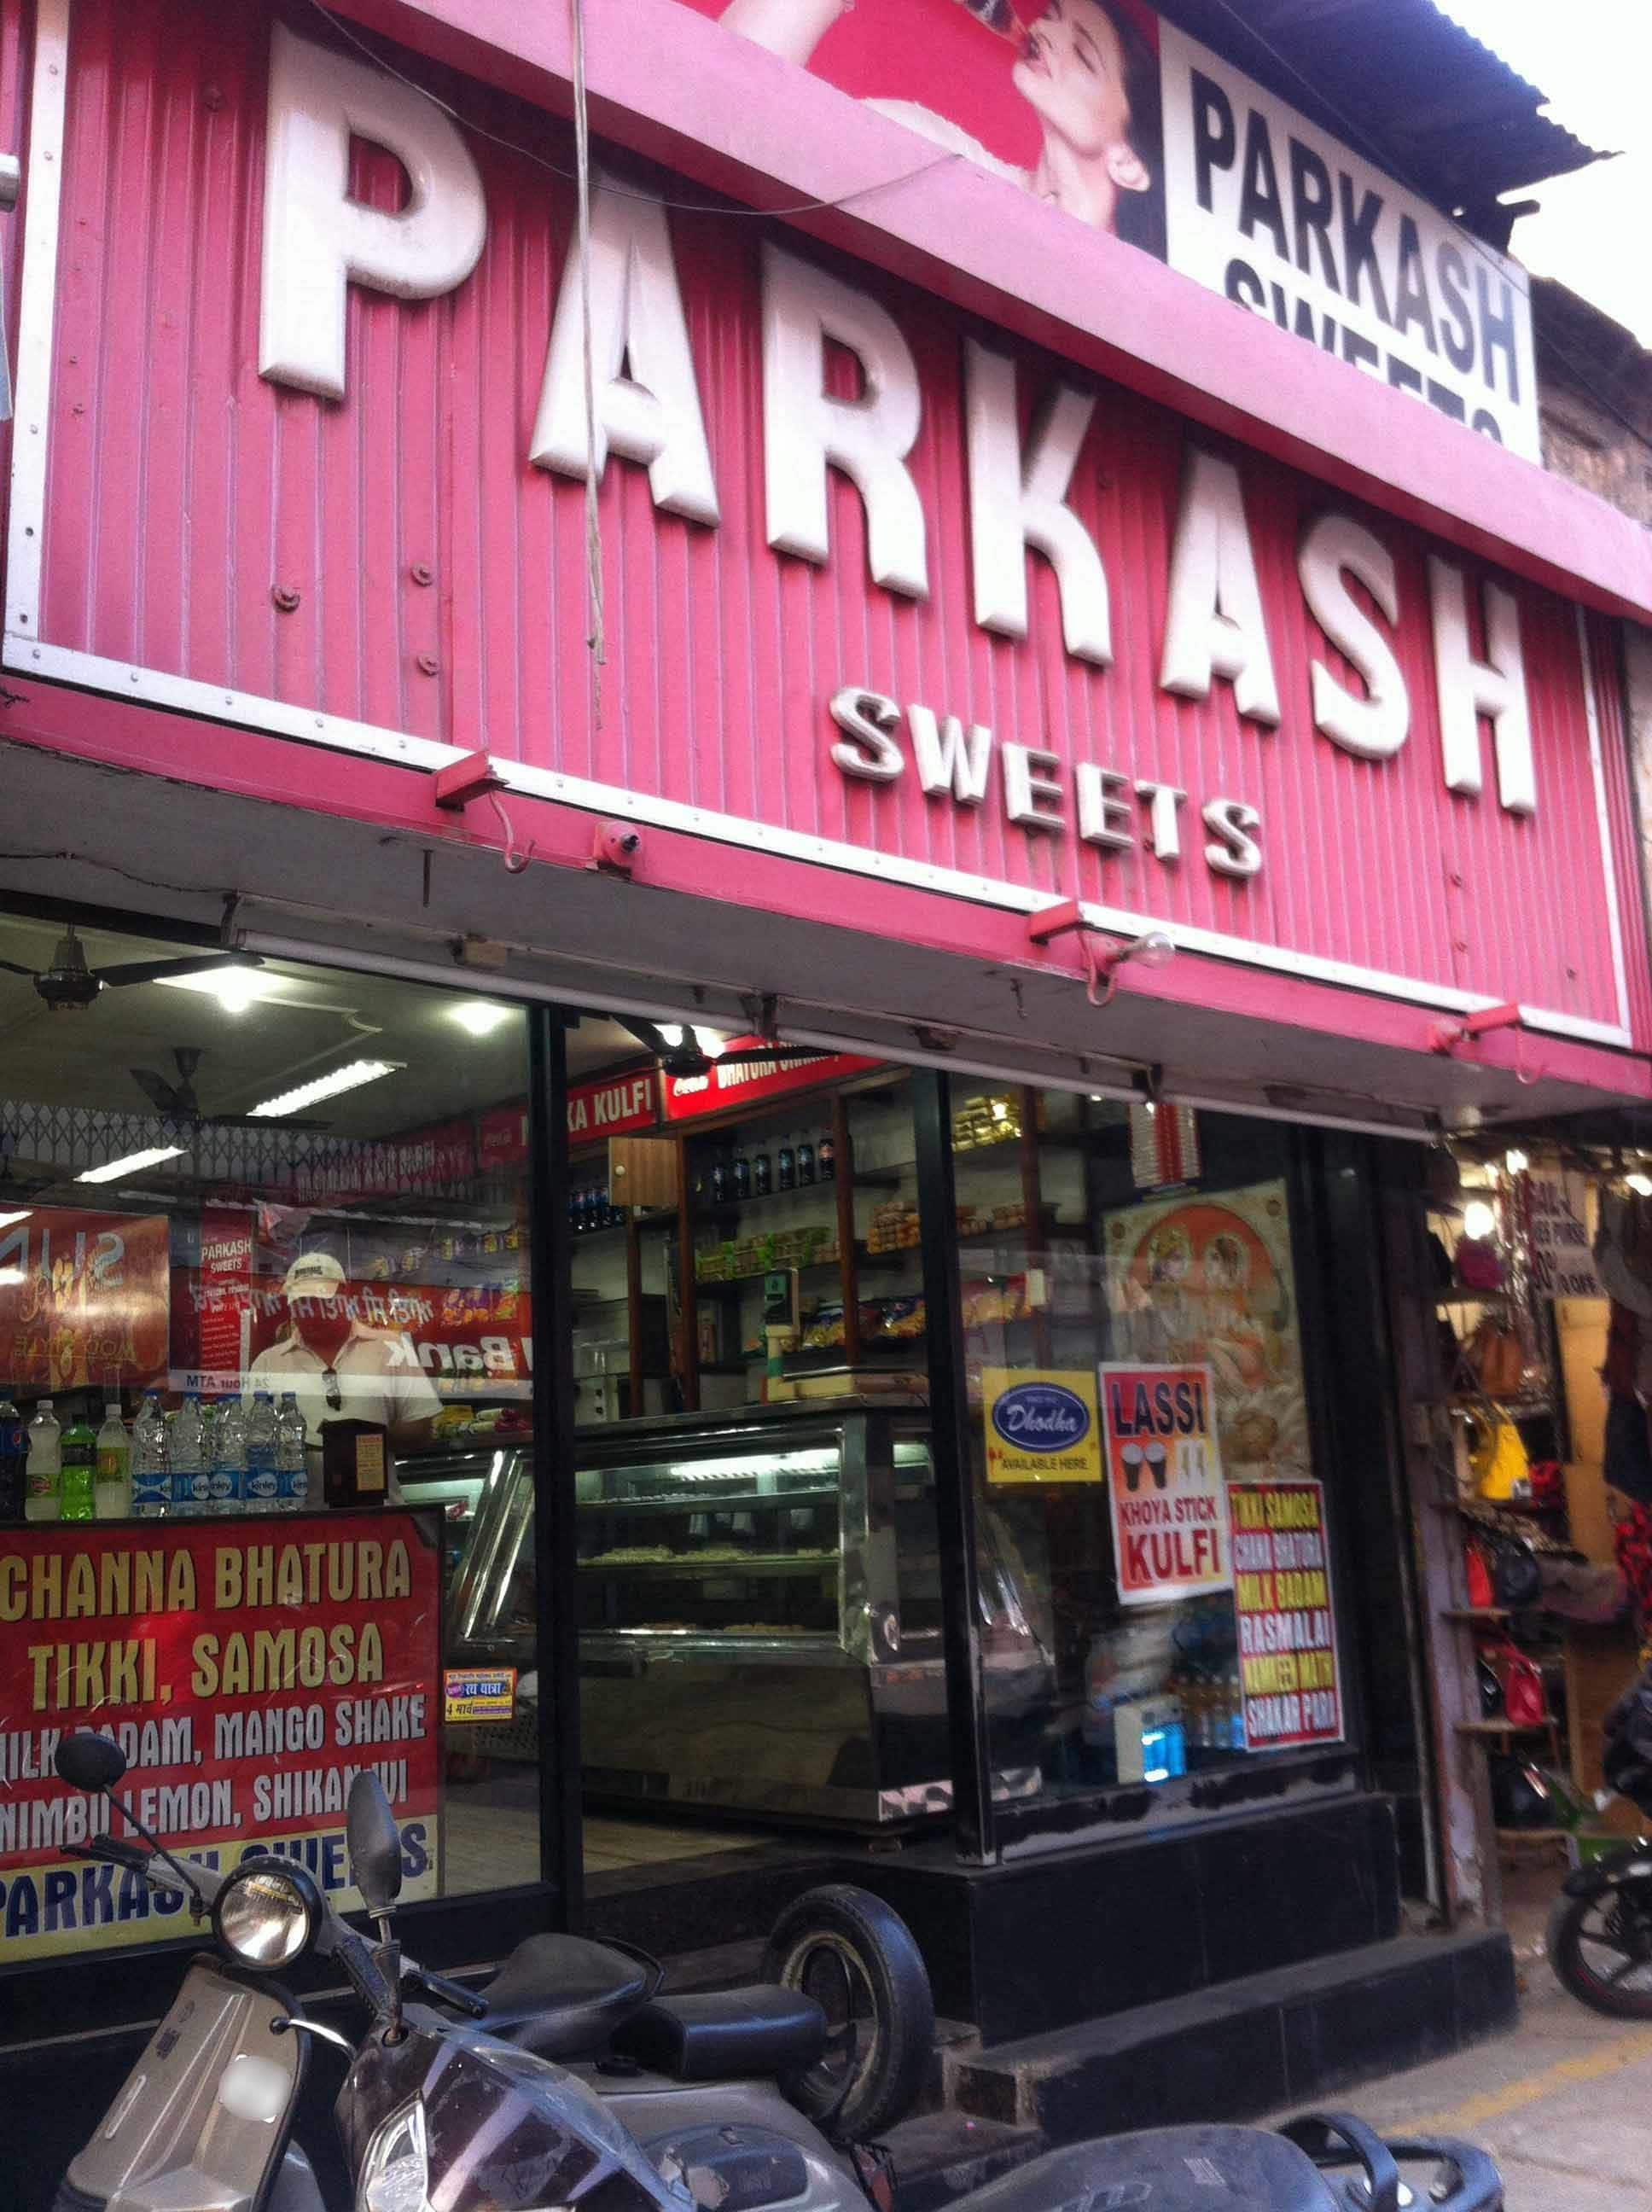 Prakash Sweets - ludhiana Junction - Ludhiana Image